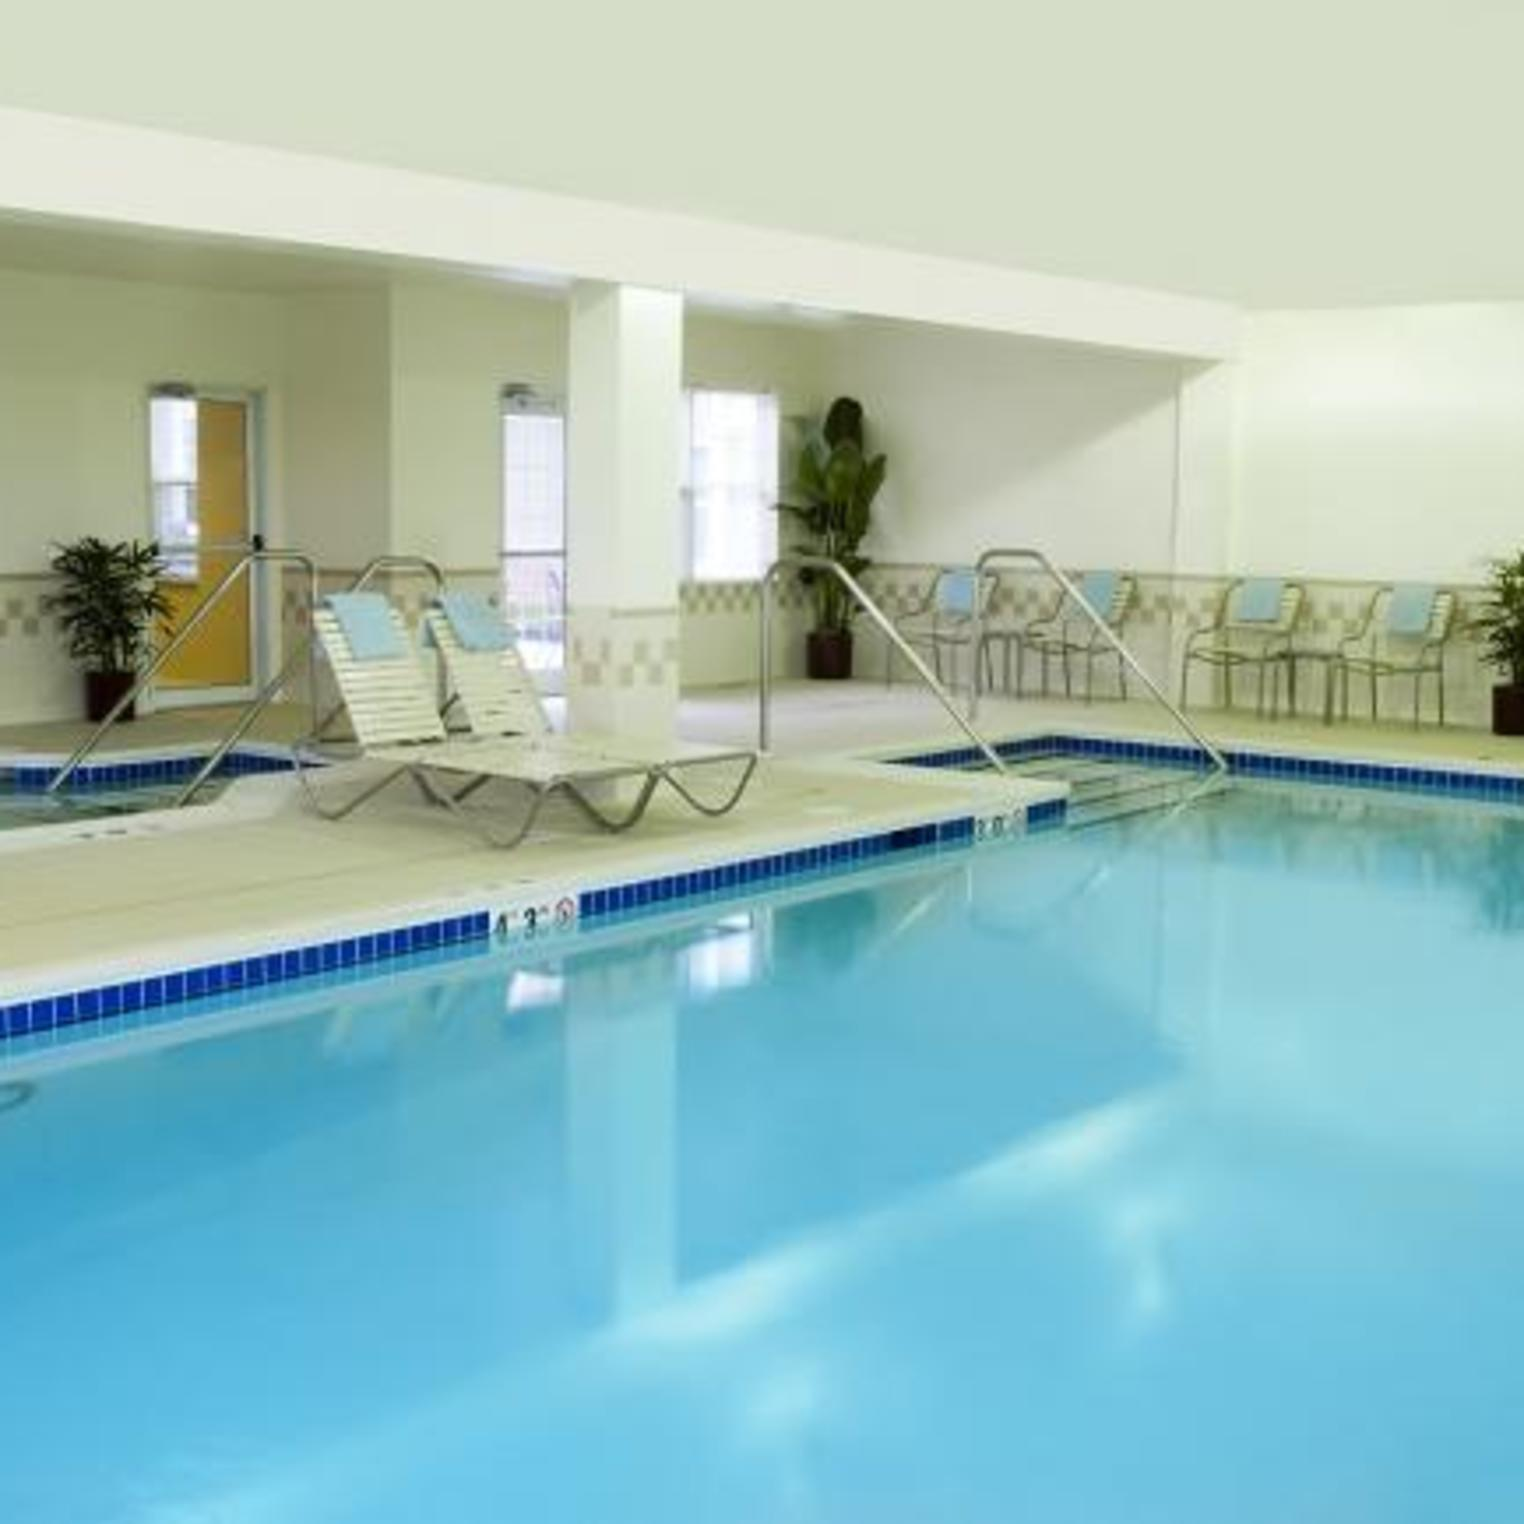 Residence Inn by Marriott Harrisburg Carlisle Indoor Heated Pool/Hot Tub